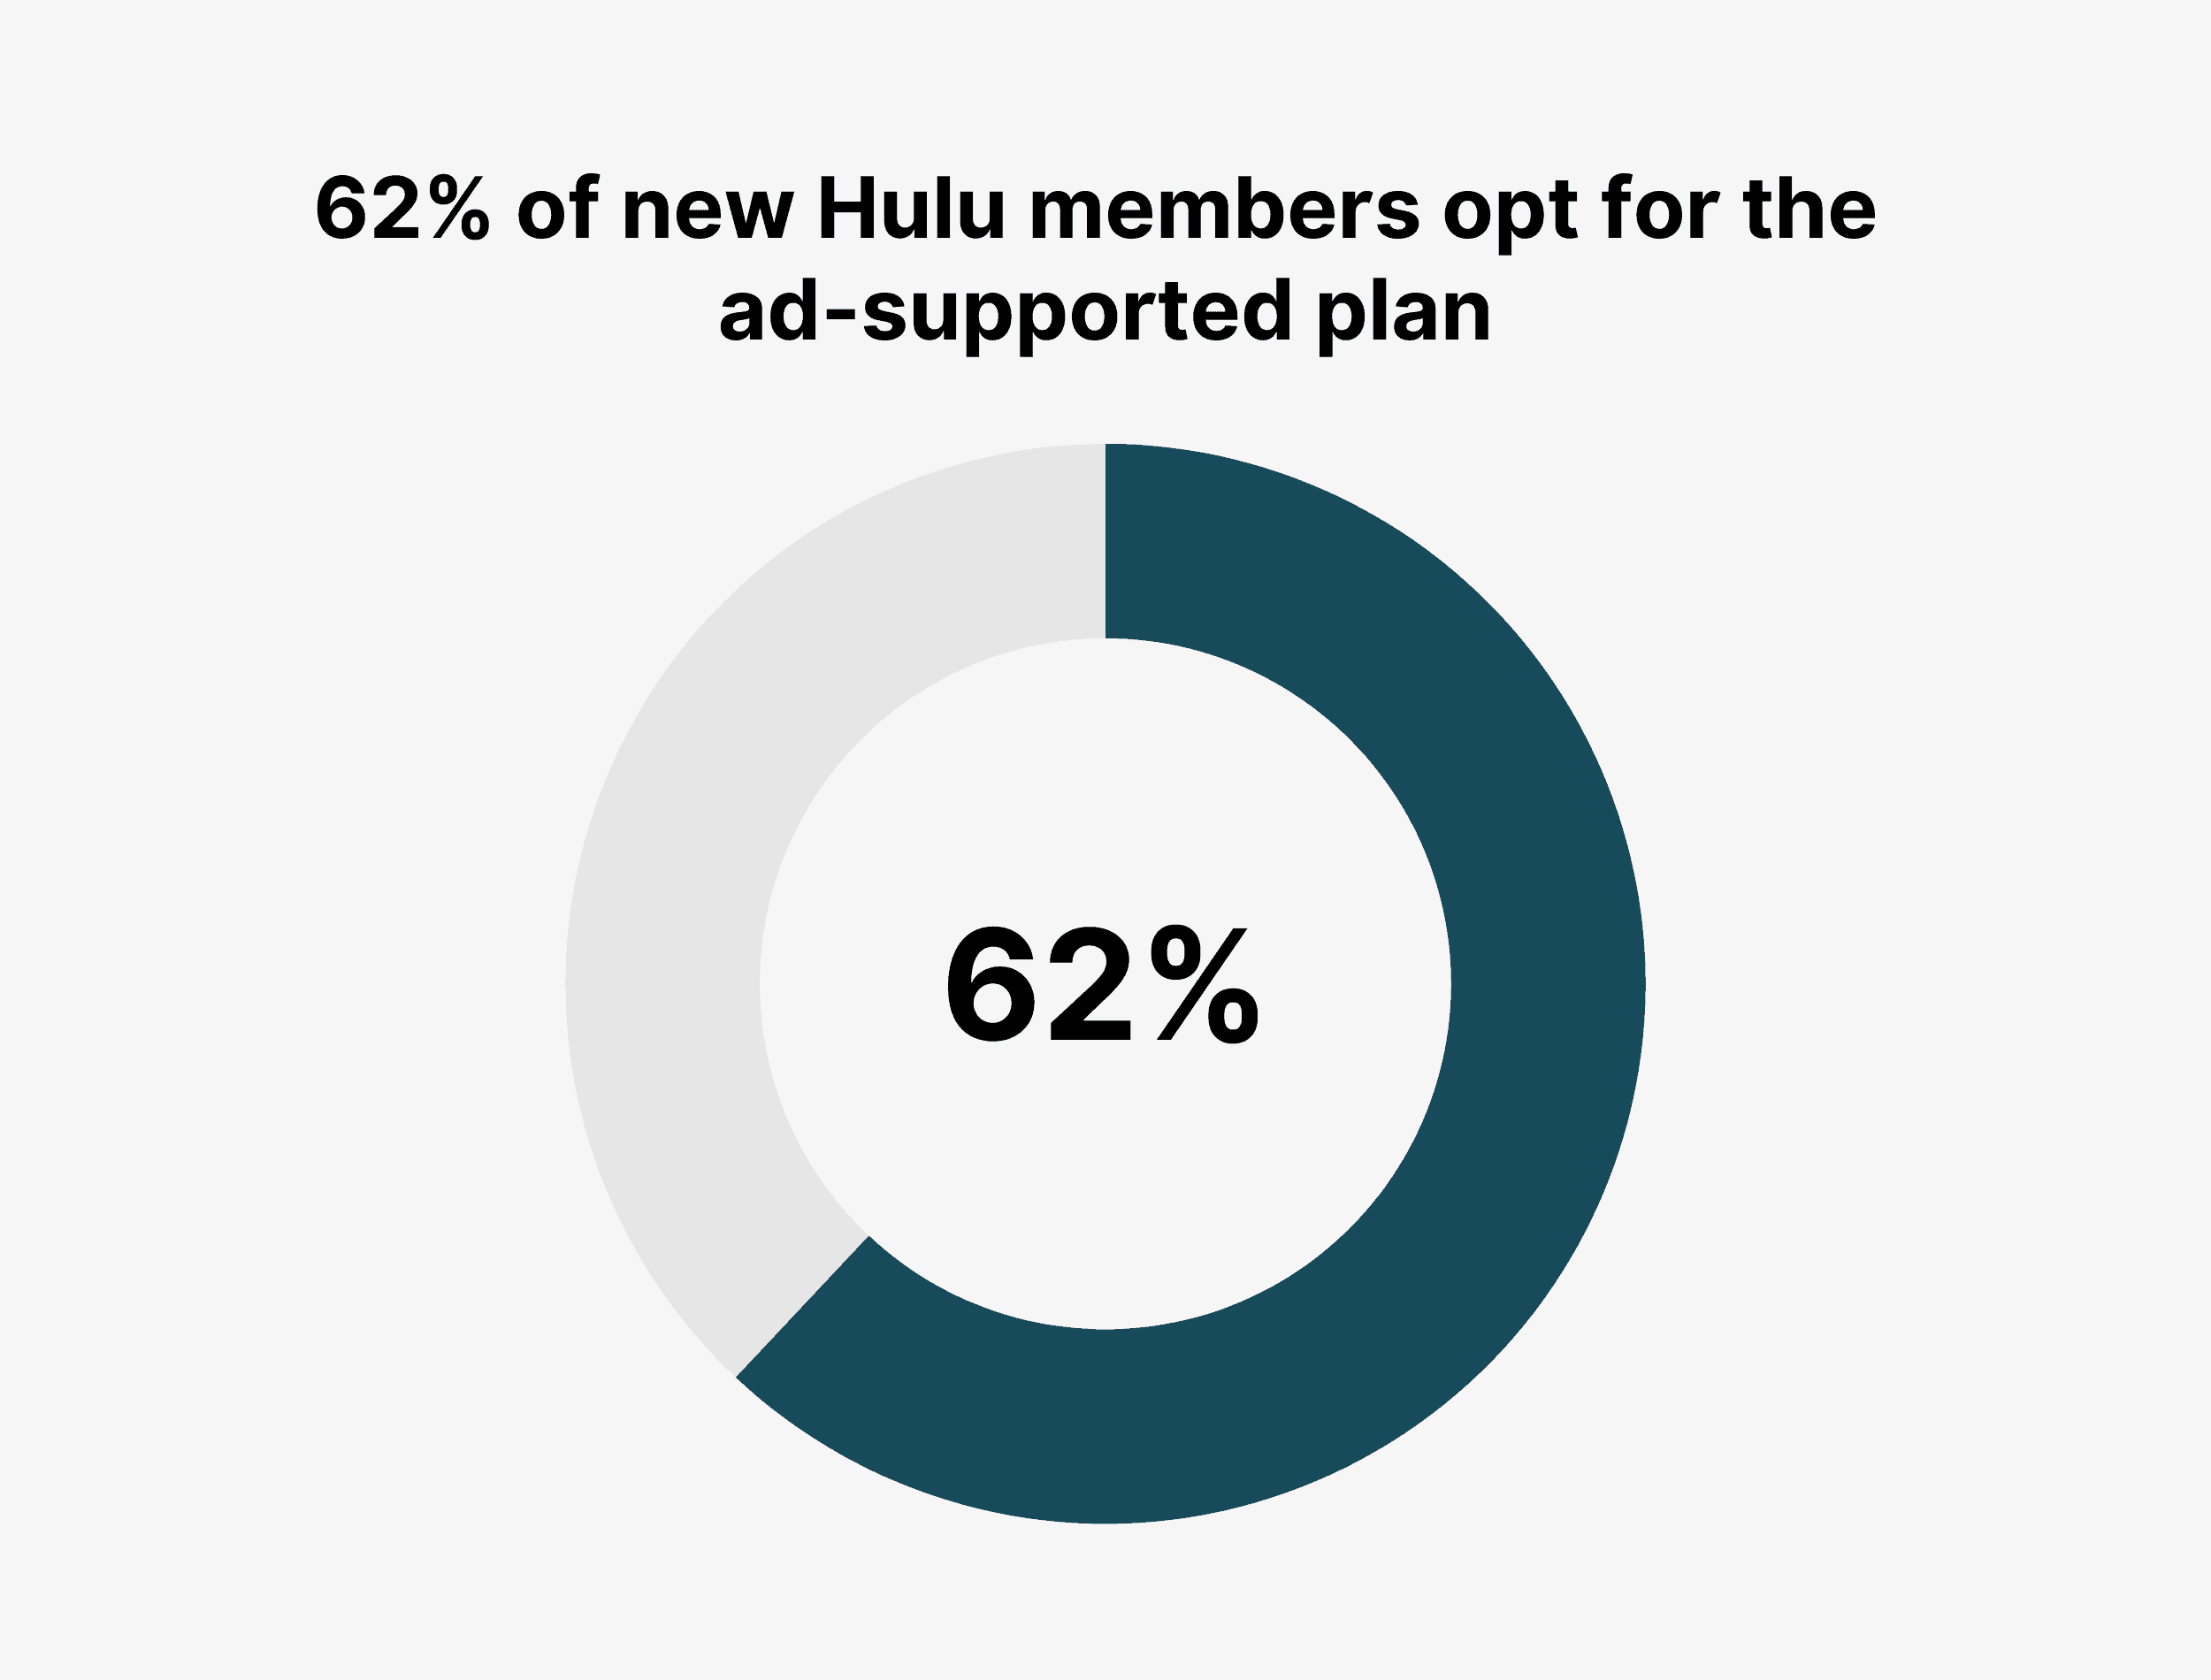 62% of new Hulu members opt for the ad-supported plan